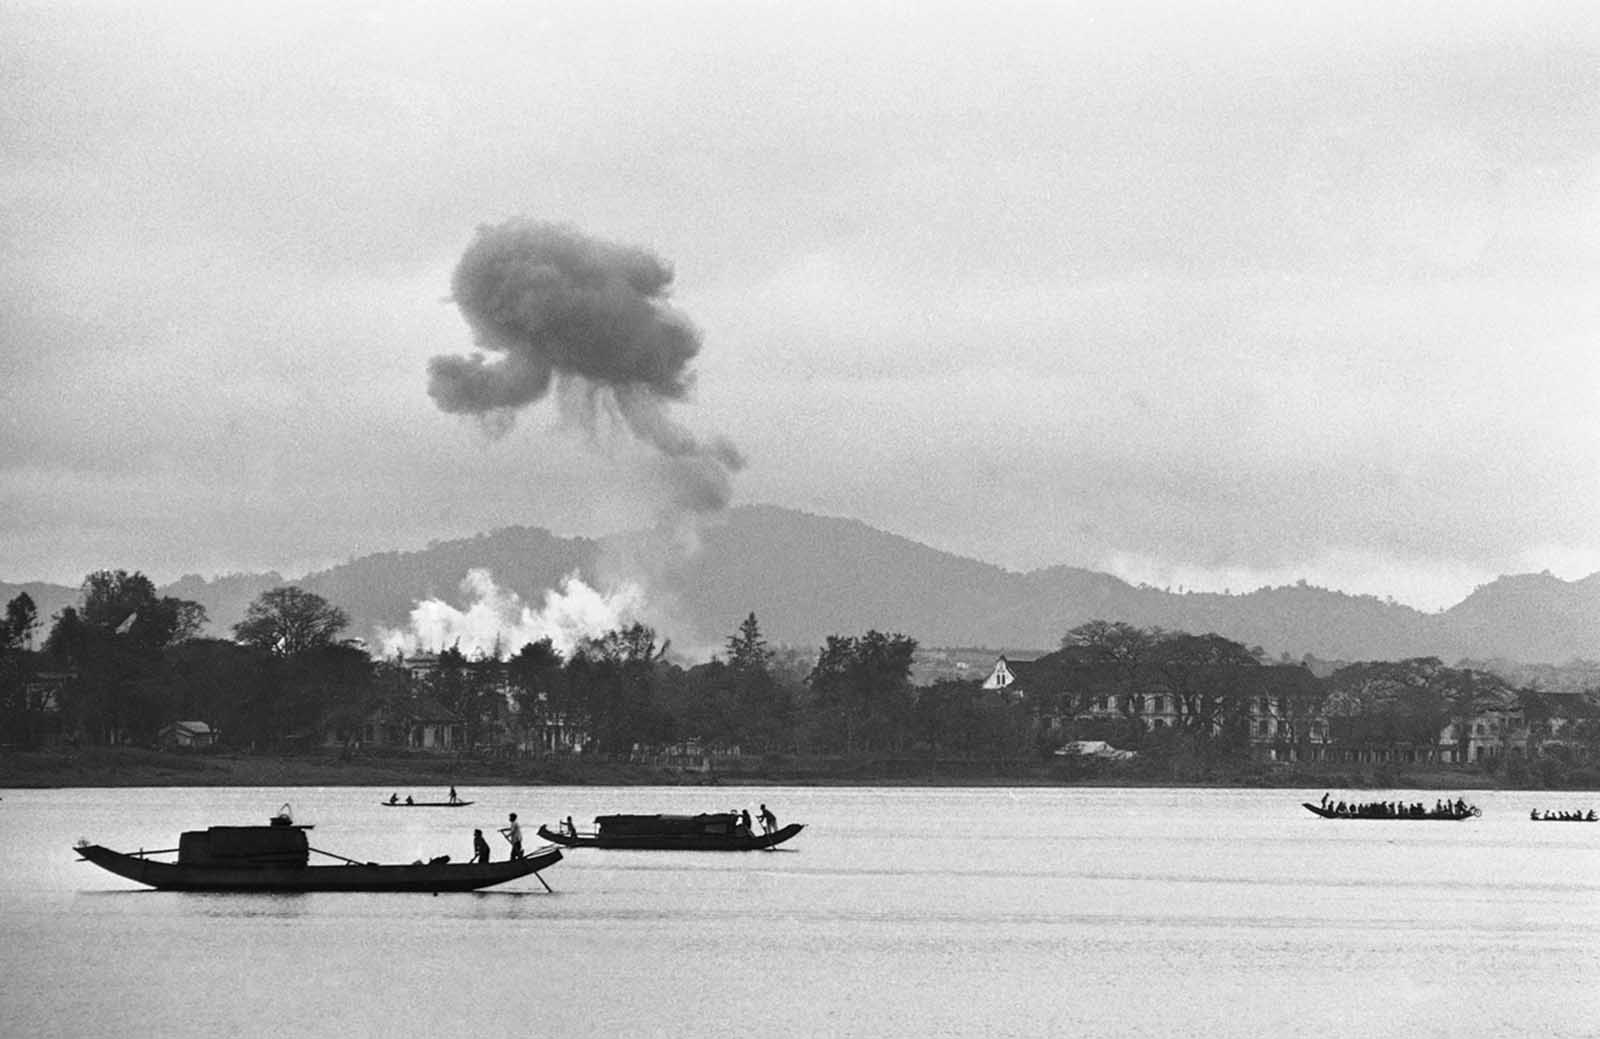 Napalm air strikes raise clouds into gray monsoon skies as houseboats glide down the Perfume River toward Hue in Vietnam on February 28, 1963, where a battle for control of the old Imperial City ended with a Communist defeat. Firebombs were directed against a village on the outskirts of Hue.